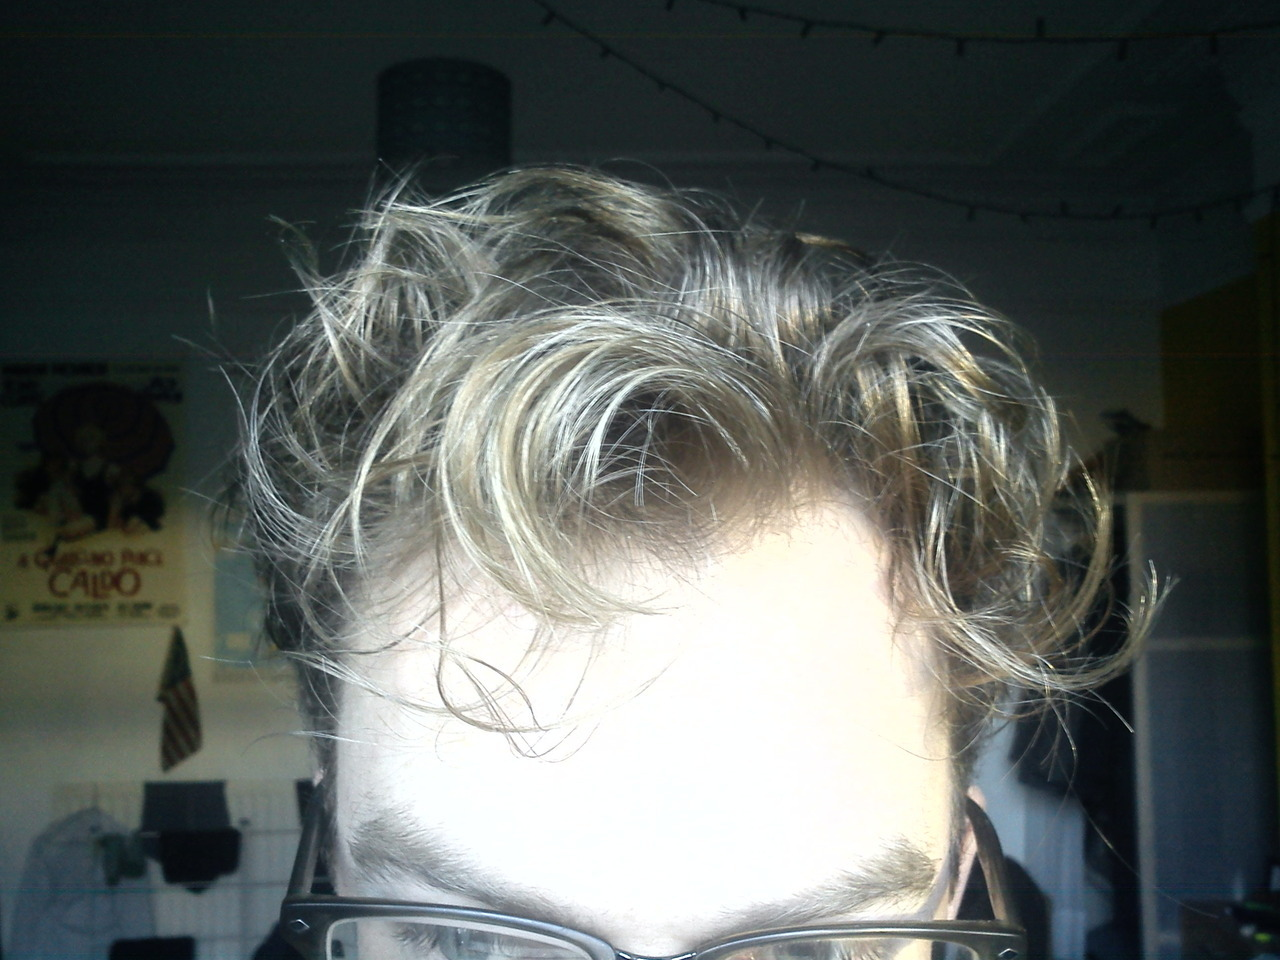 Shan't have to style my hair today.